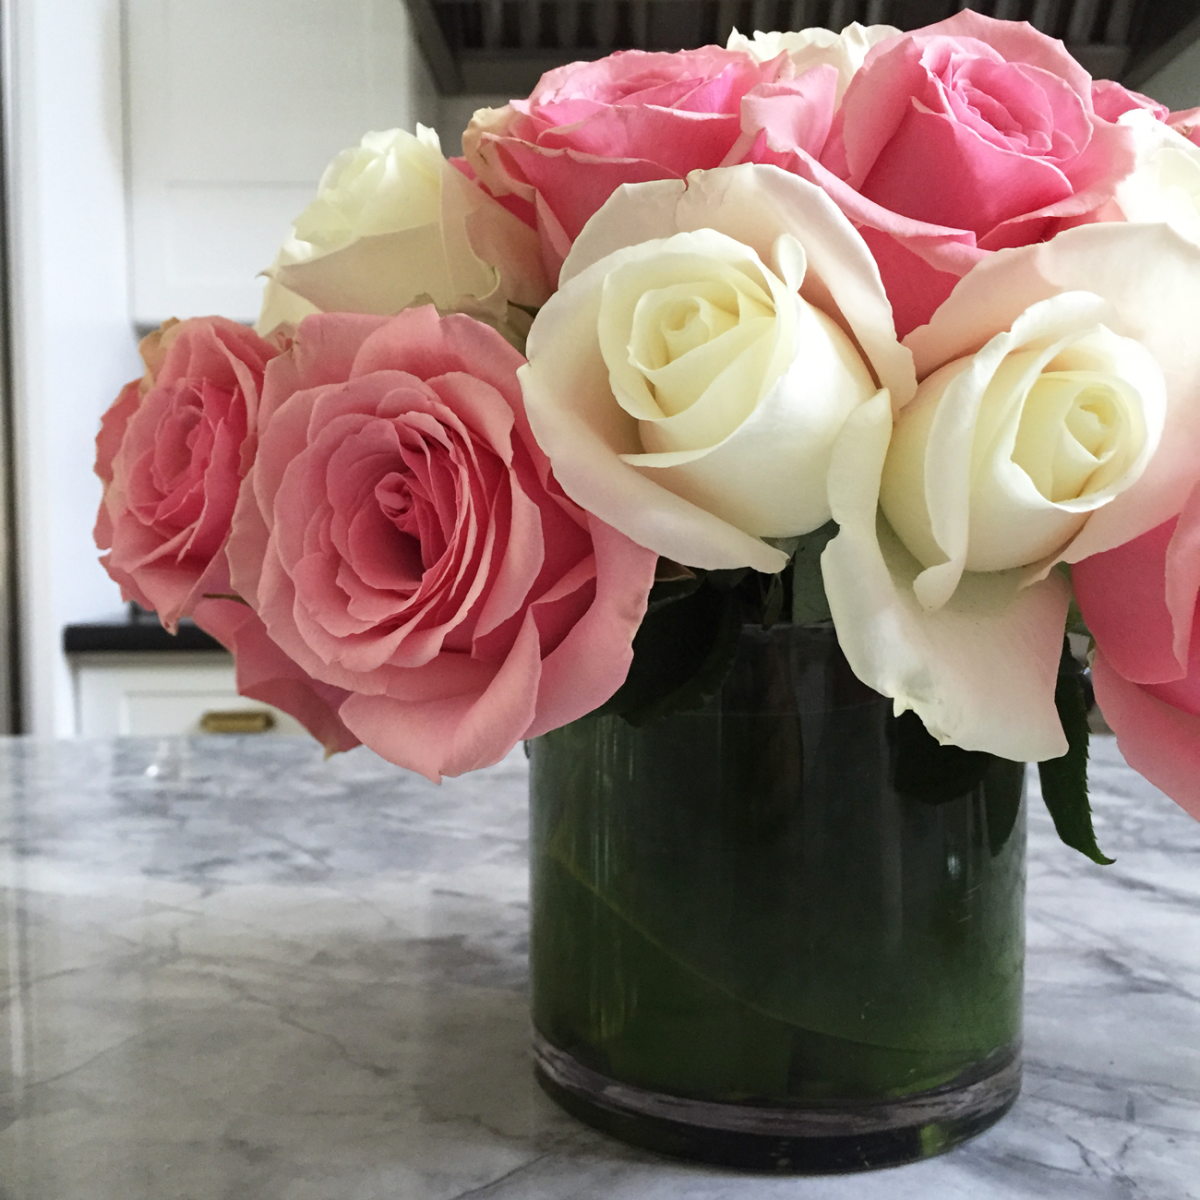 {Roses from a friend}